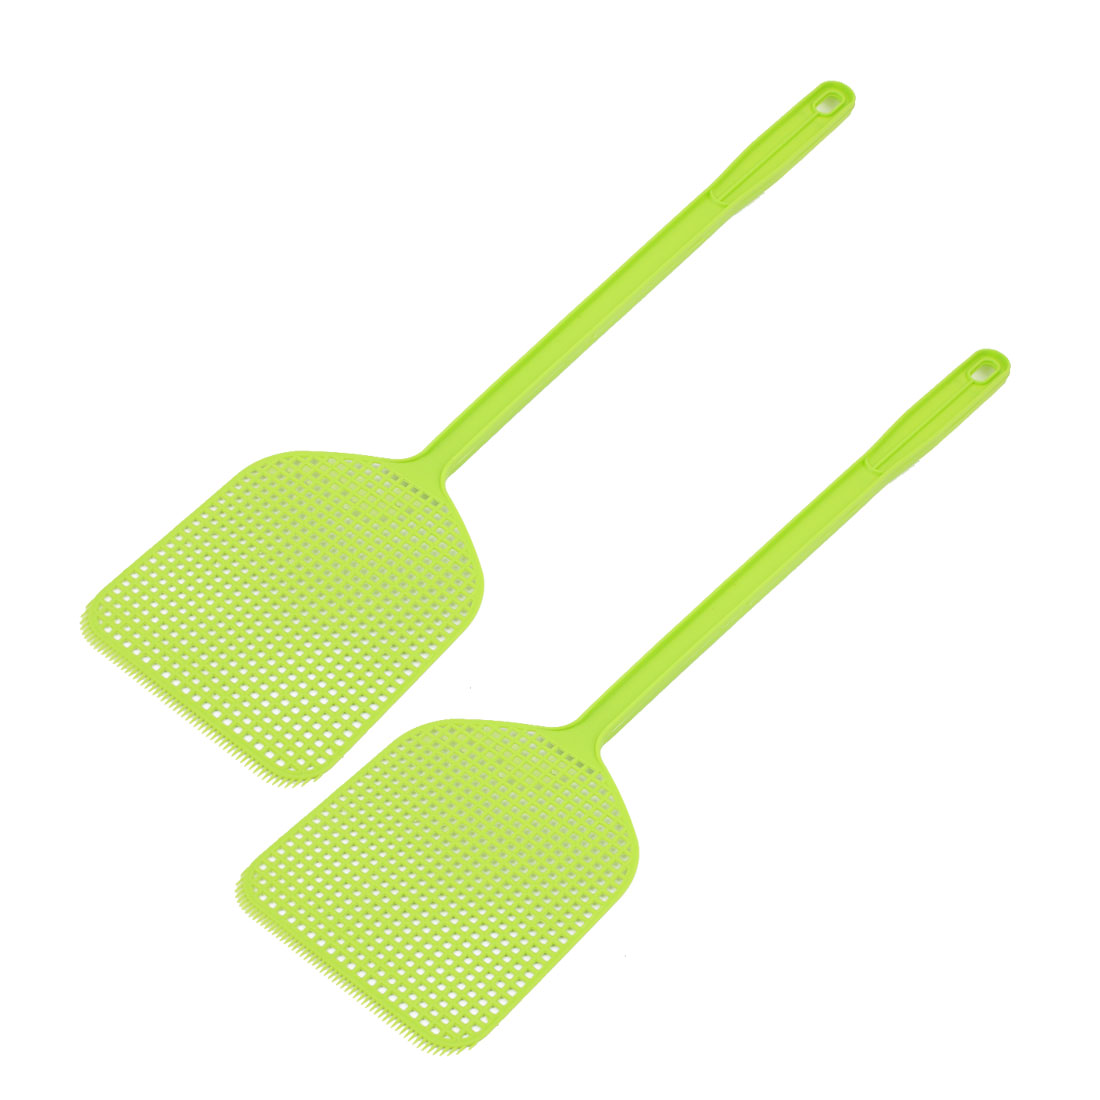 Plastic Hand Held Mosquito Fly Bug Pest Swatter 44cm Length Green 2pcs